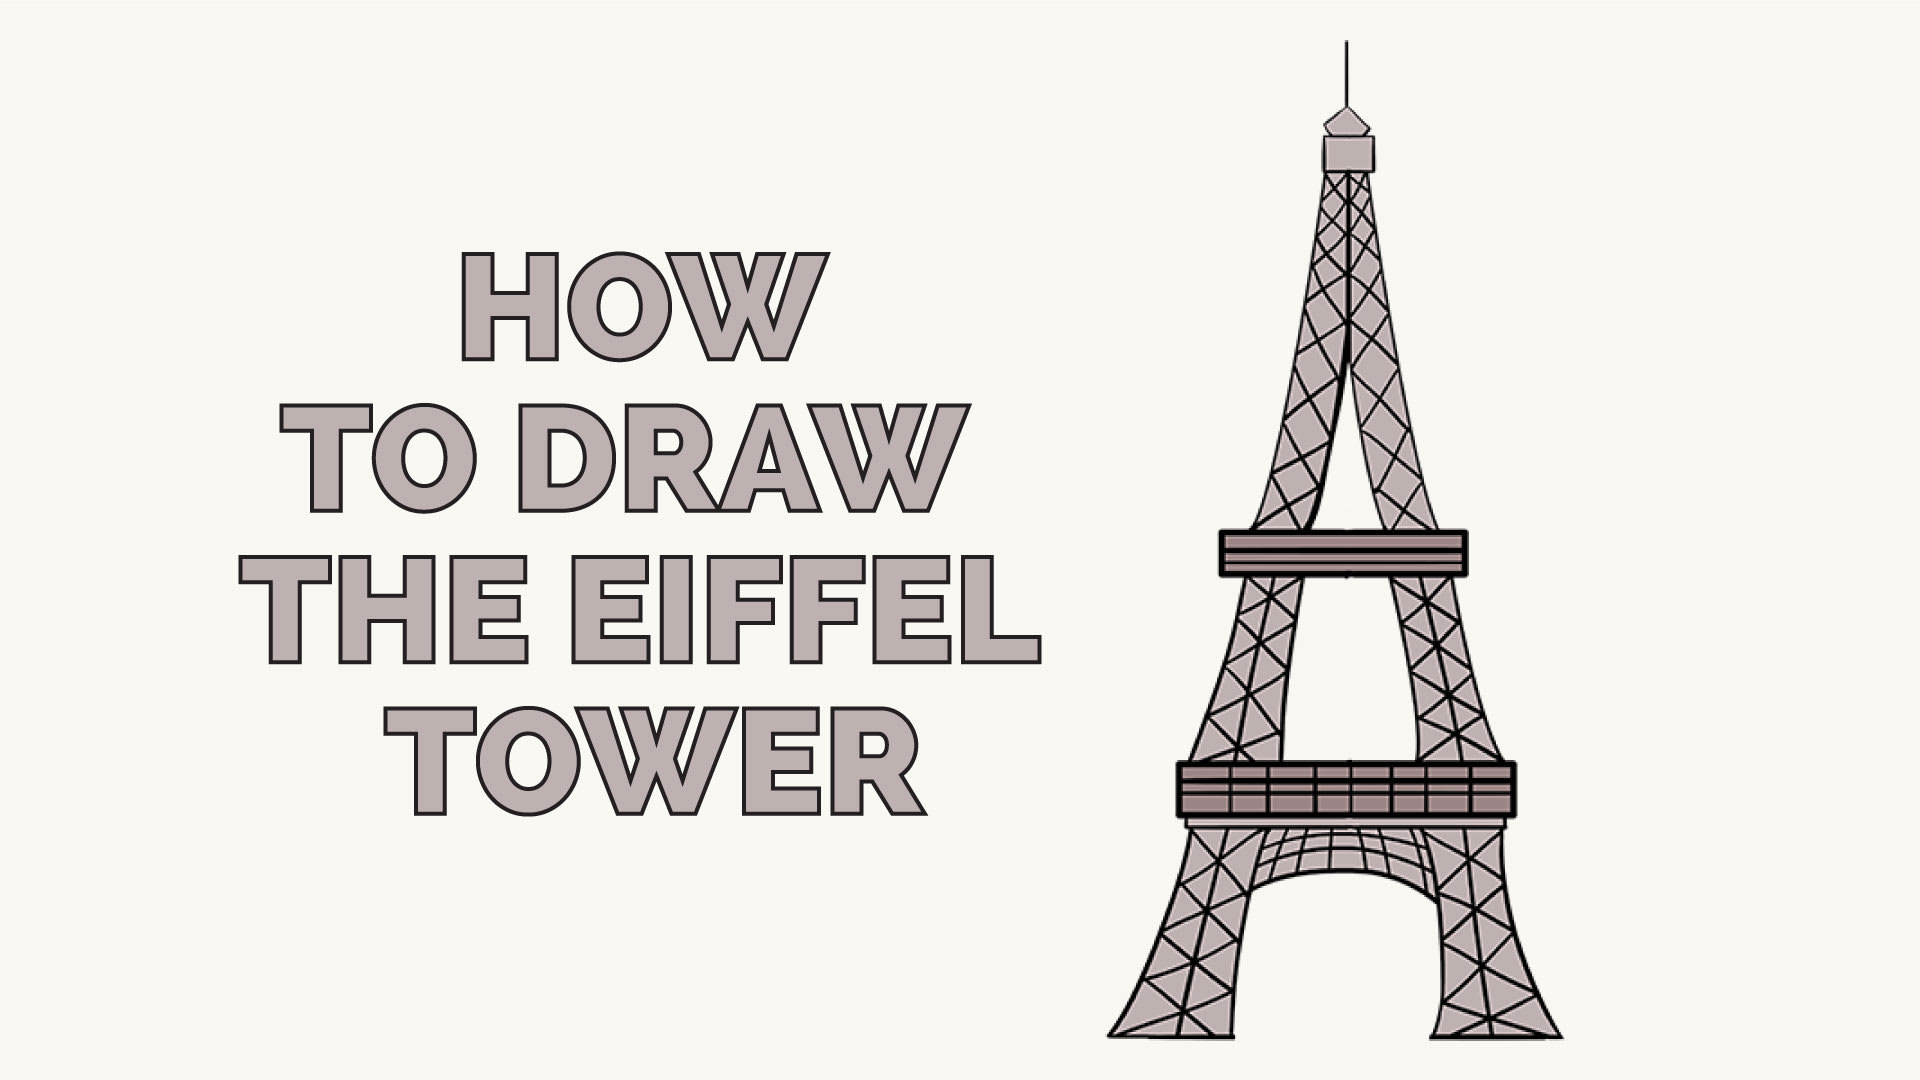 How to draw a tower 3